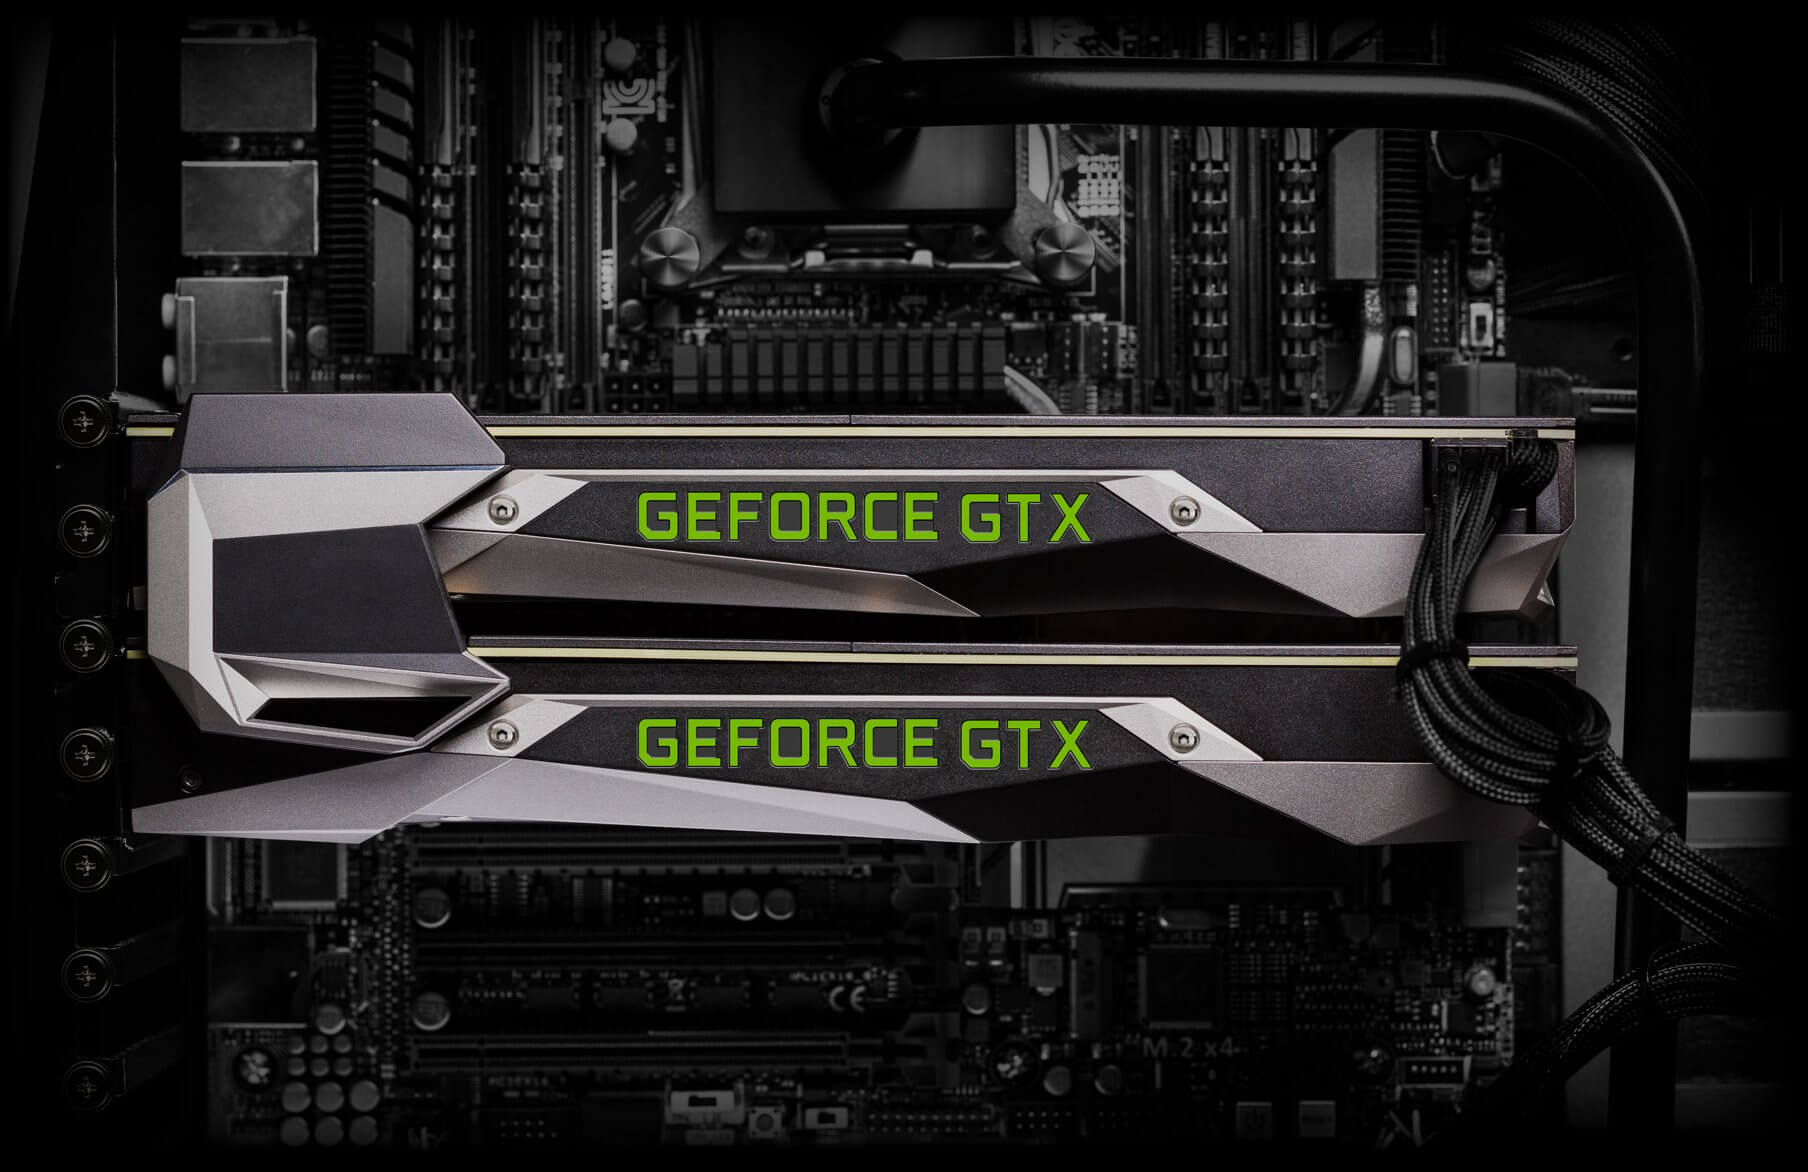 Nvidia launches another GeForce driver for GTX 1080 and VRWorks